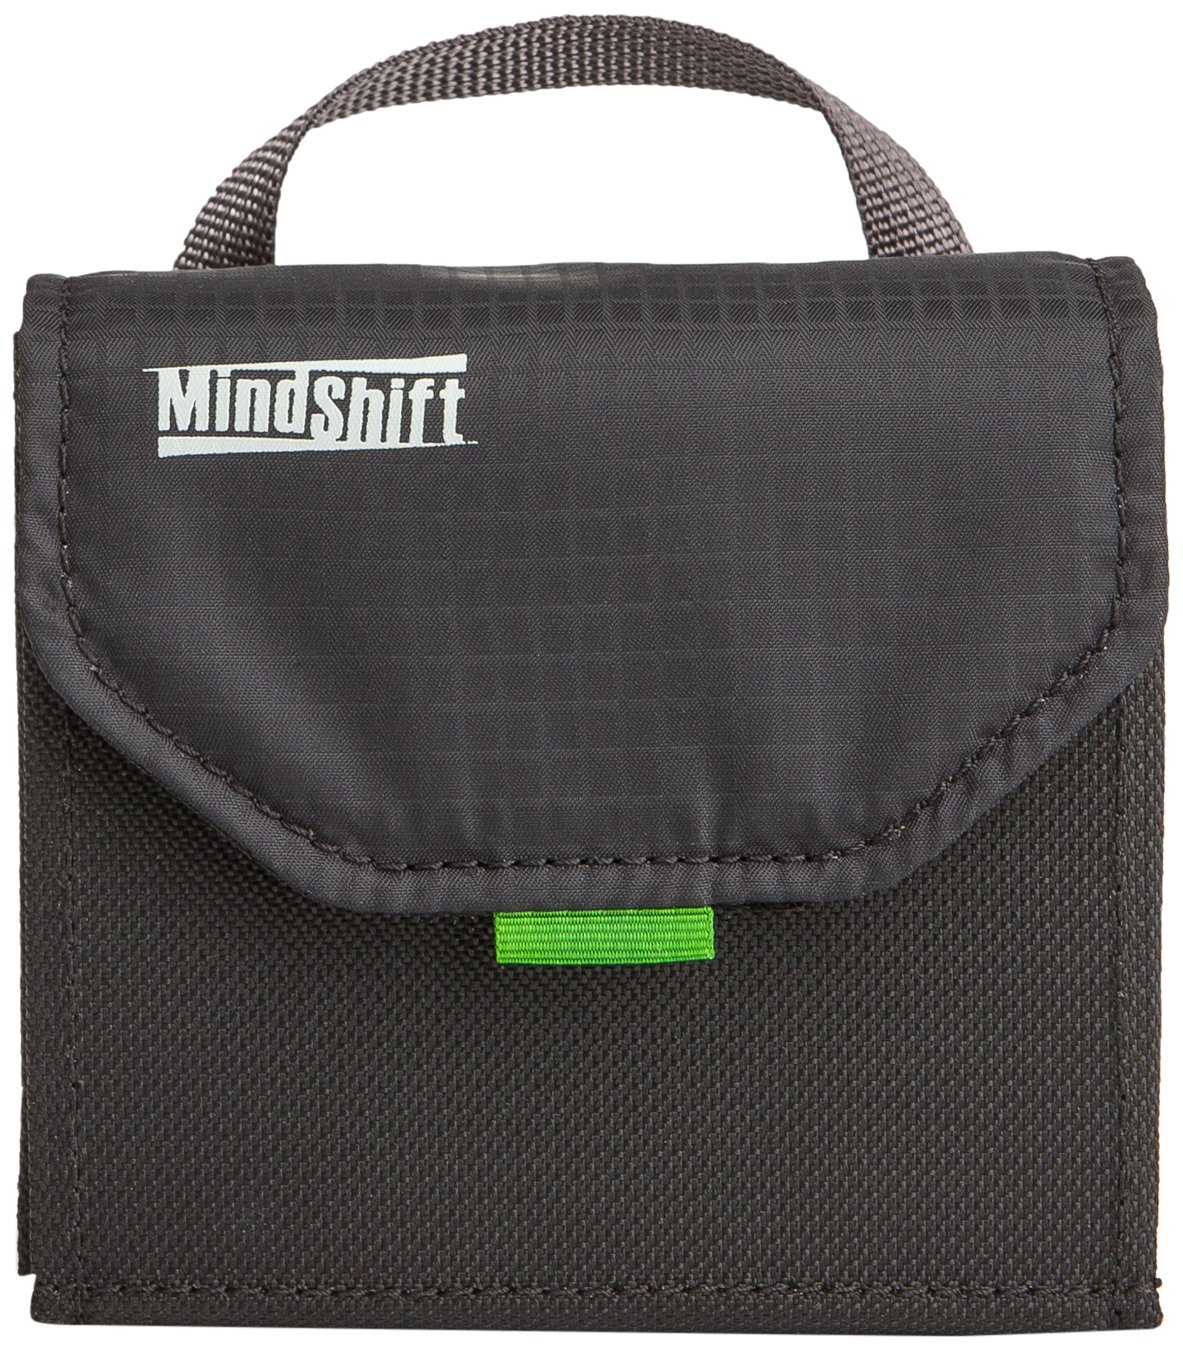 Mindshift Gear filtre Nest Mini filtre Pouch 540920